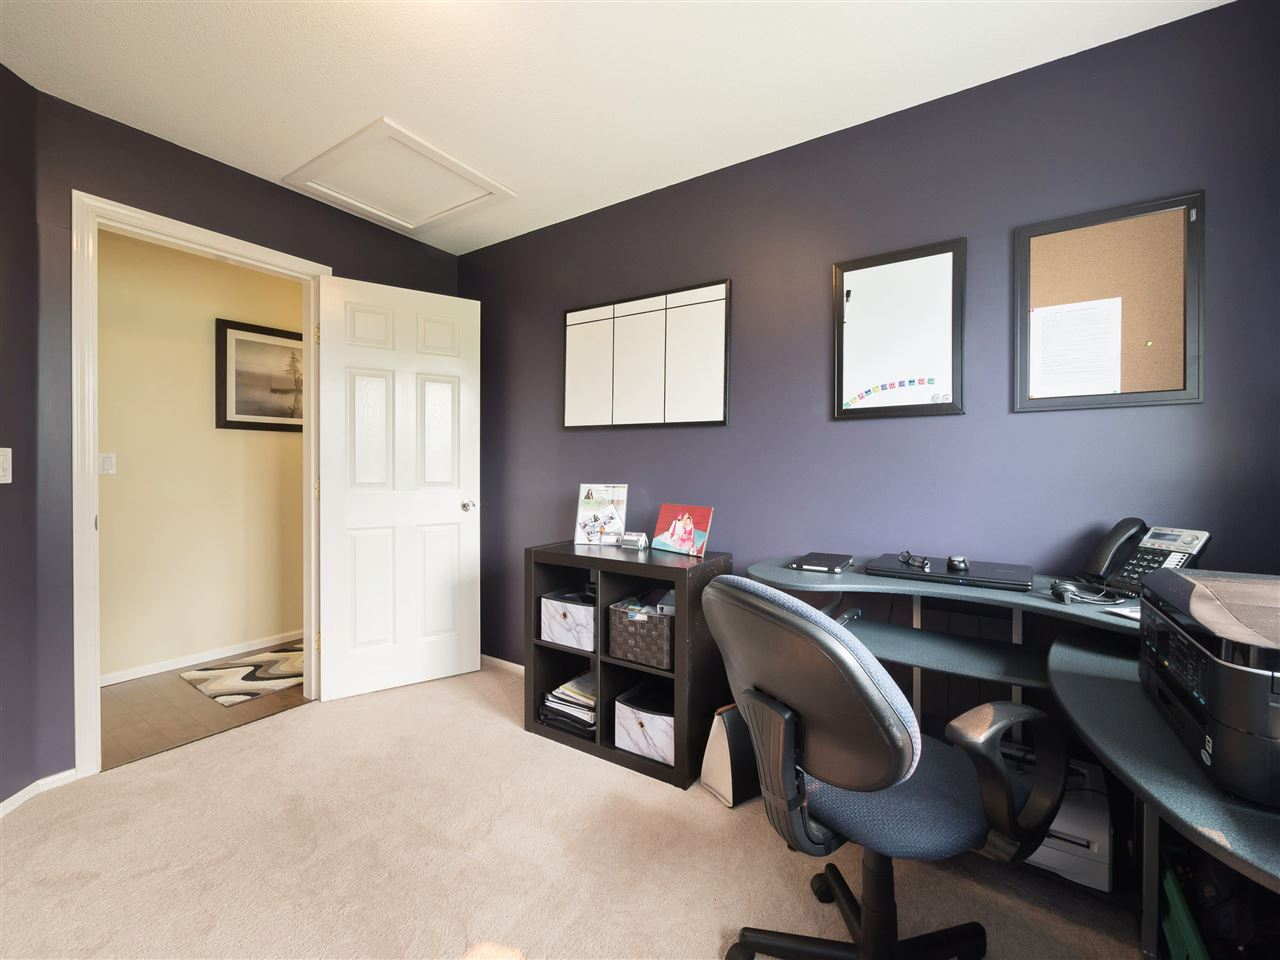 Condo Apartment at 301 1558 GRANT AVENUE, Unit 301, Port Coquitlam, British Columbia. Image 11